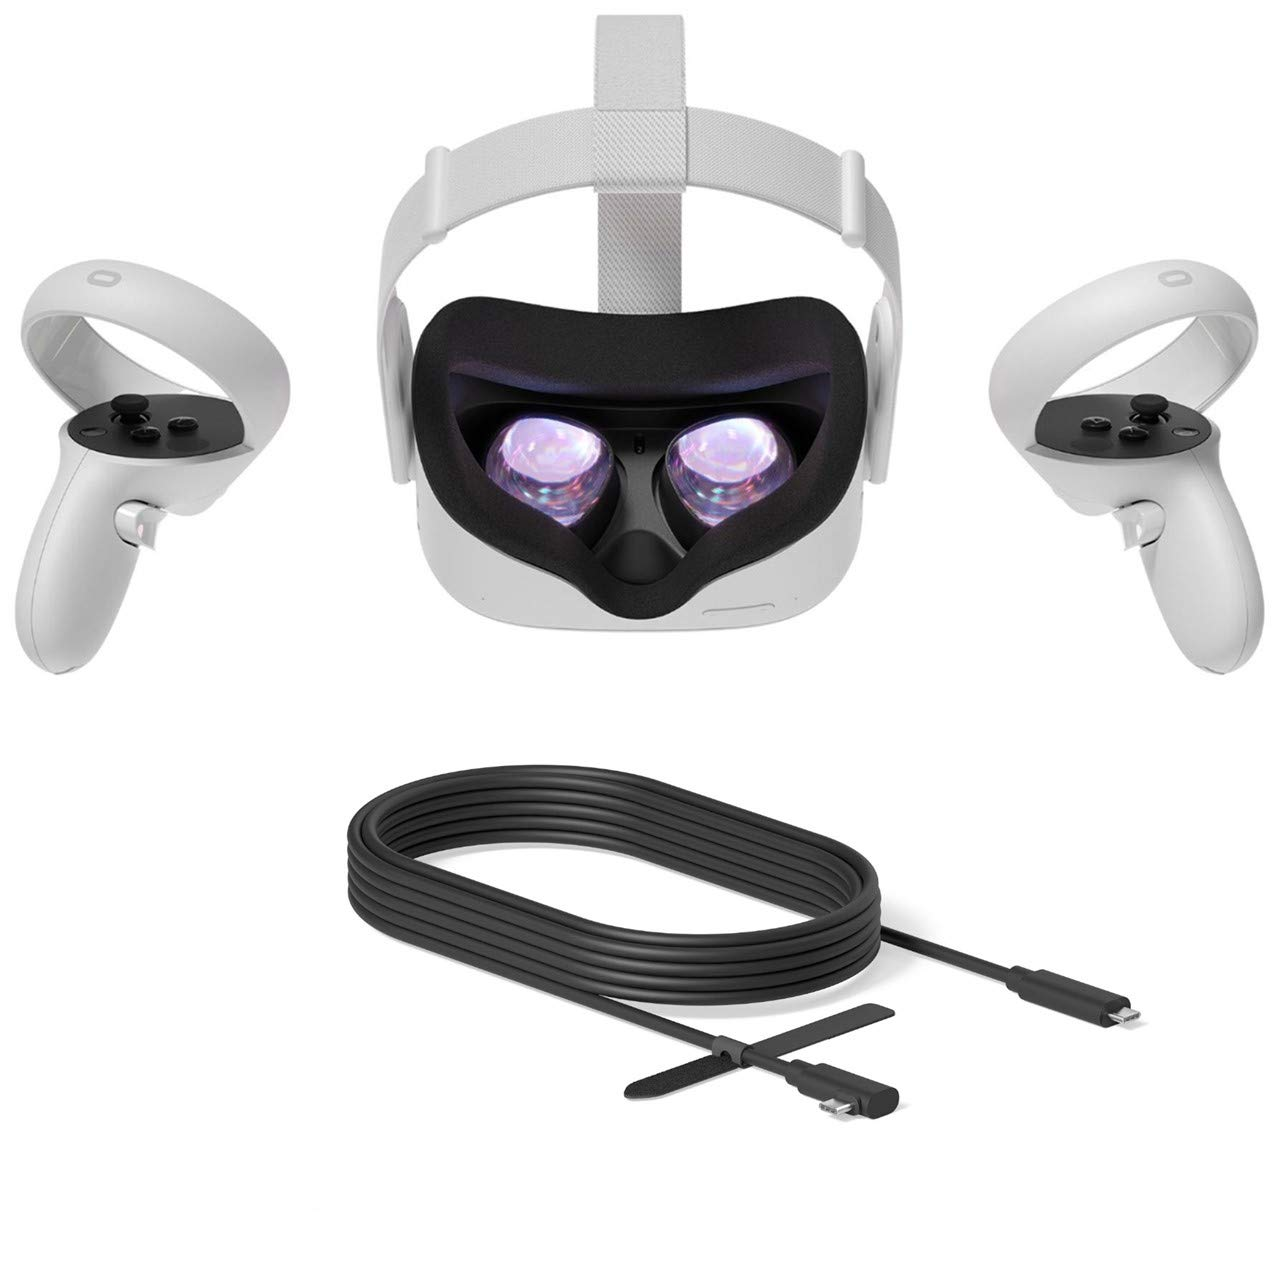 2020 Oculus Quest 2 All-In-One VR Headset, Touch Controllers, 256GB SSD, 1832x1920 up to 90 Hz Refresh Rate LCD, Glasses Compitble, 3D Audio, Mytrix Link Cable (3M)